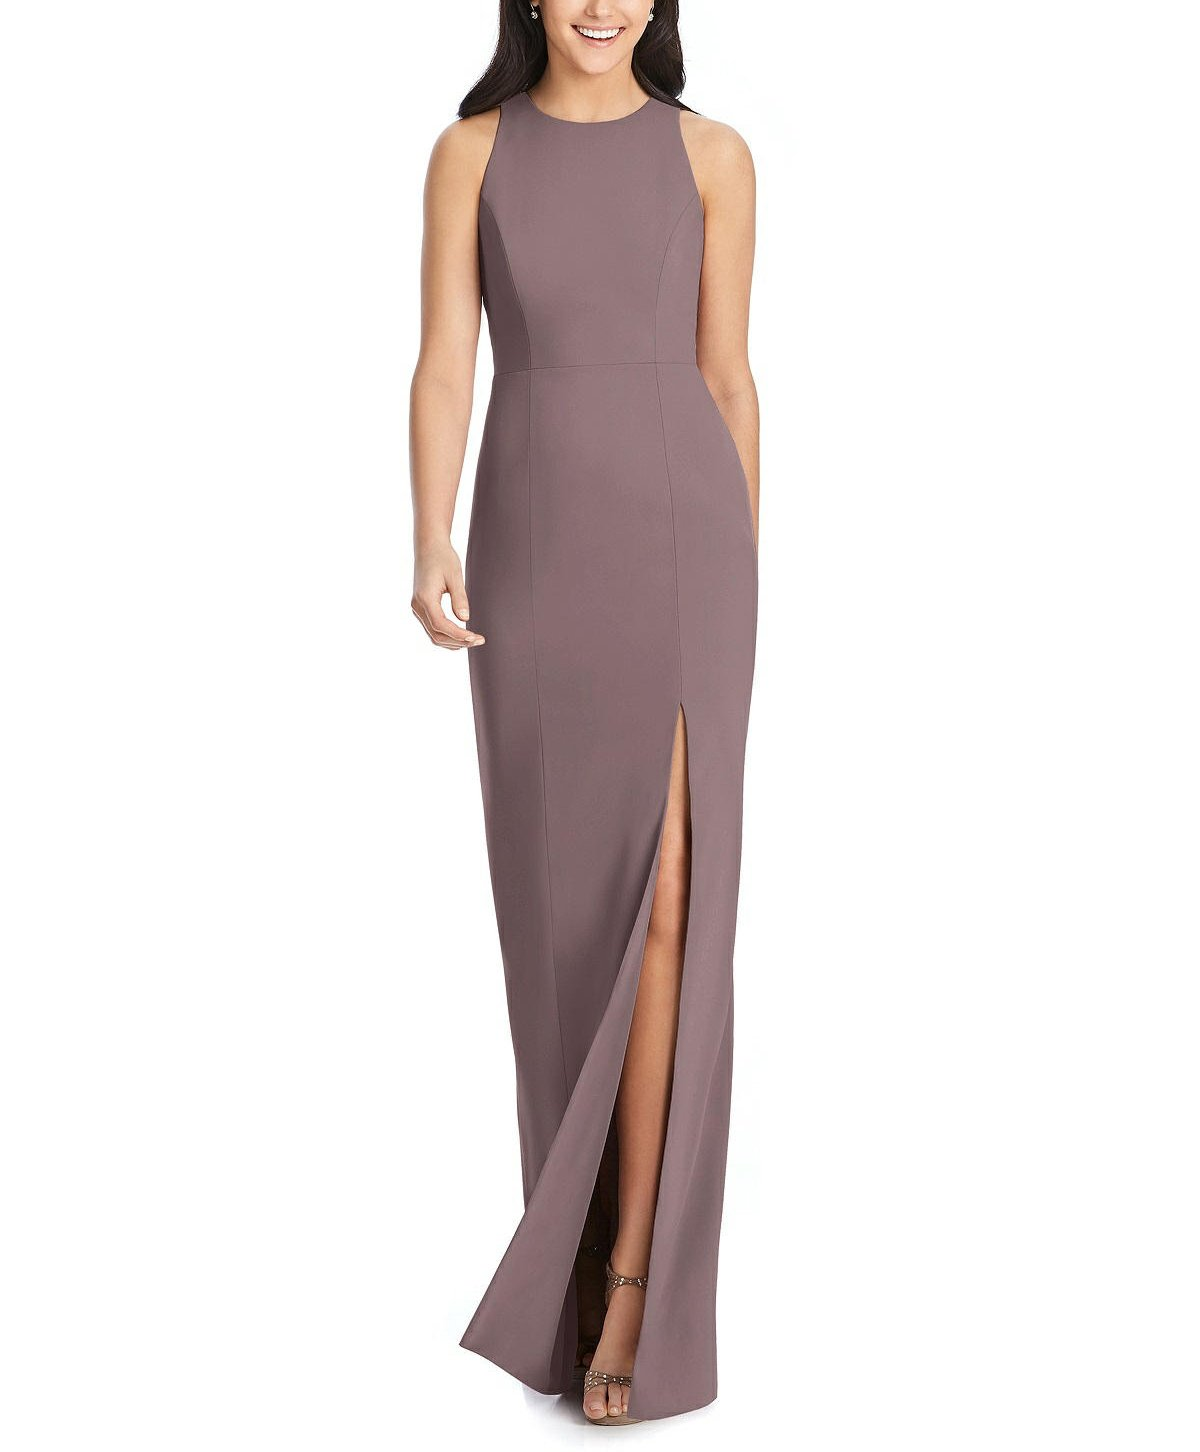 1511489a8b5 Dessy Collection Style 3029 Bridesmaid Dress